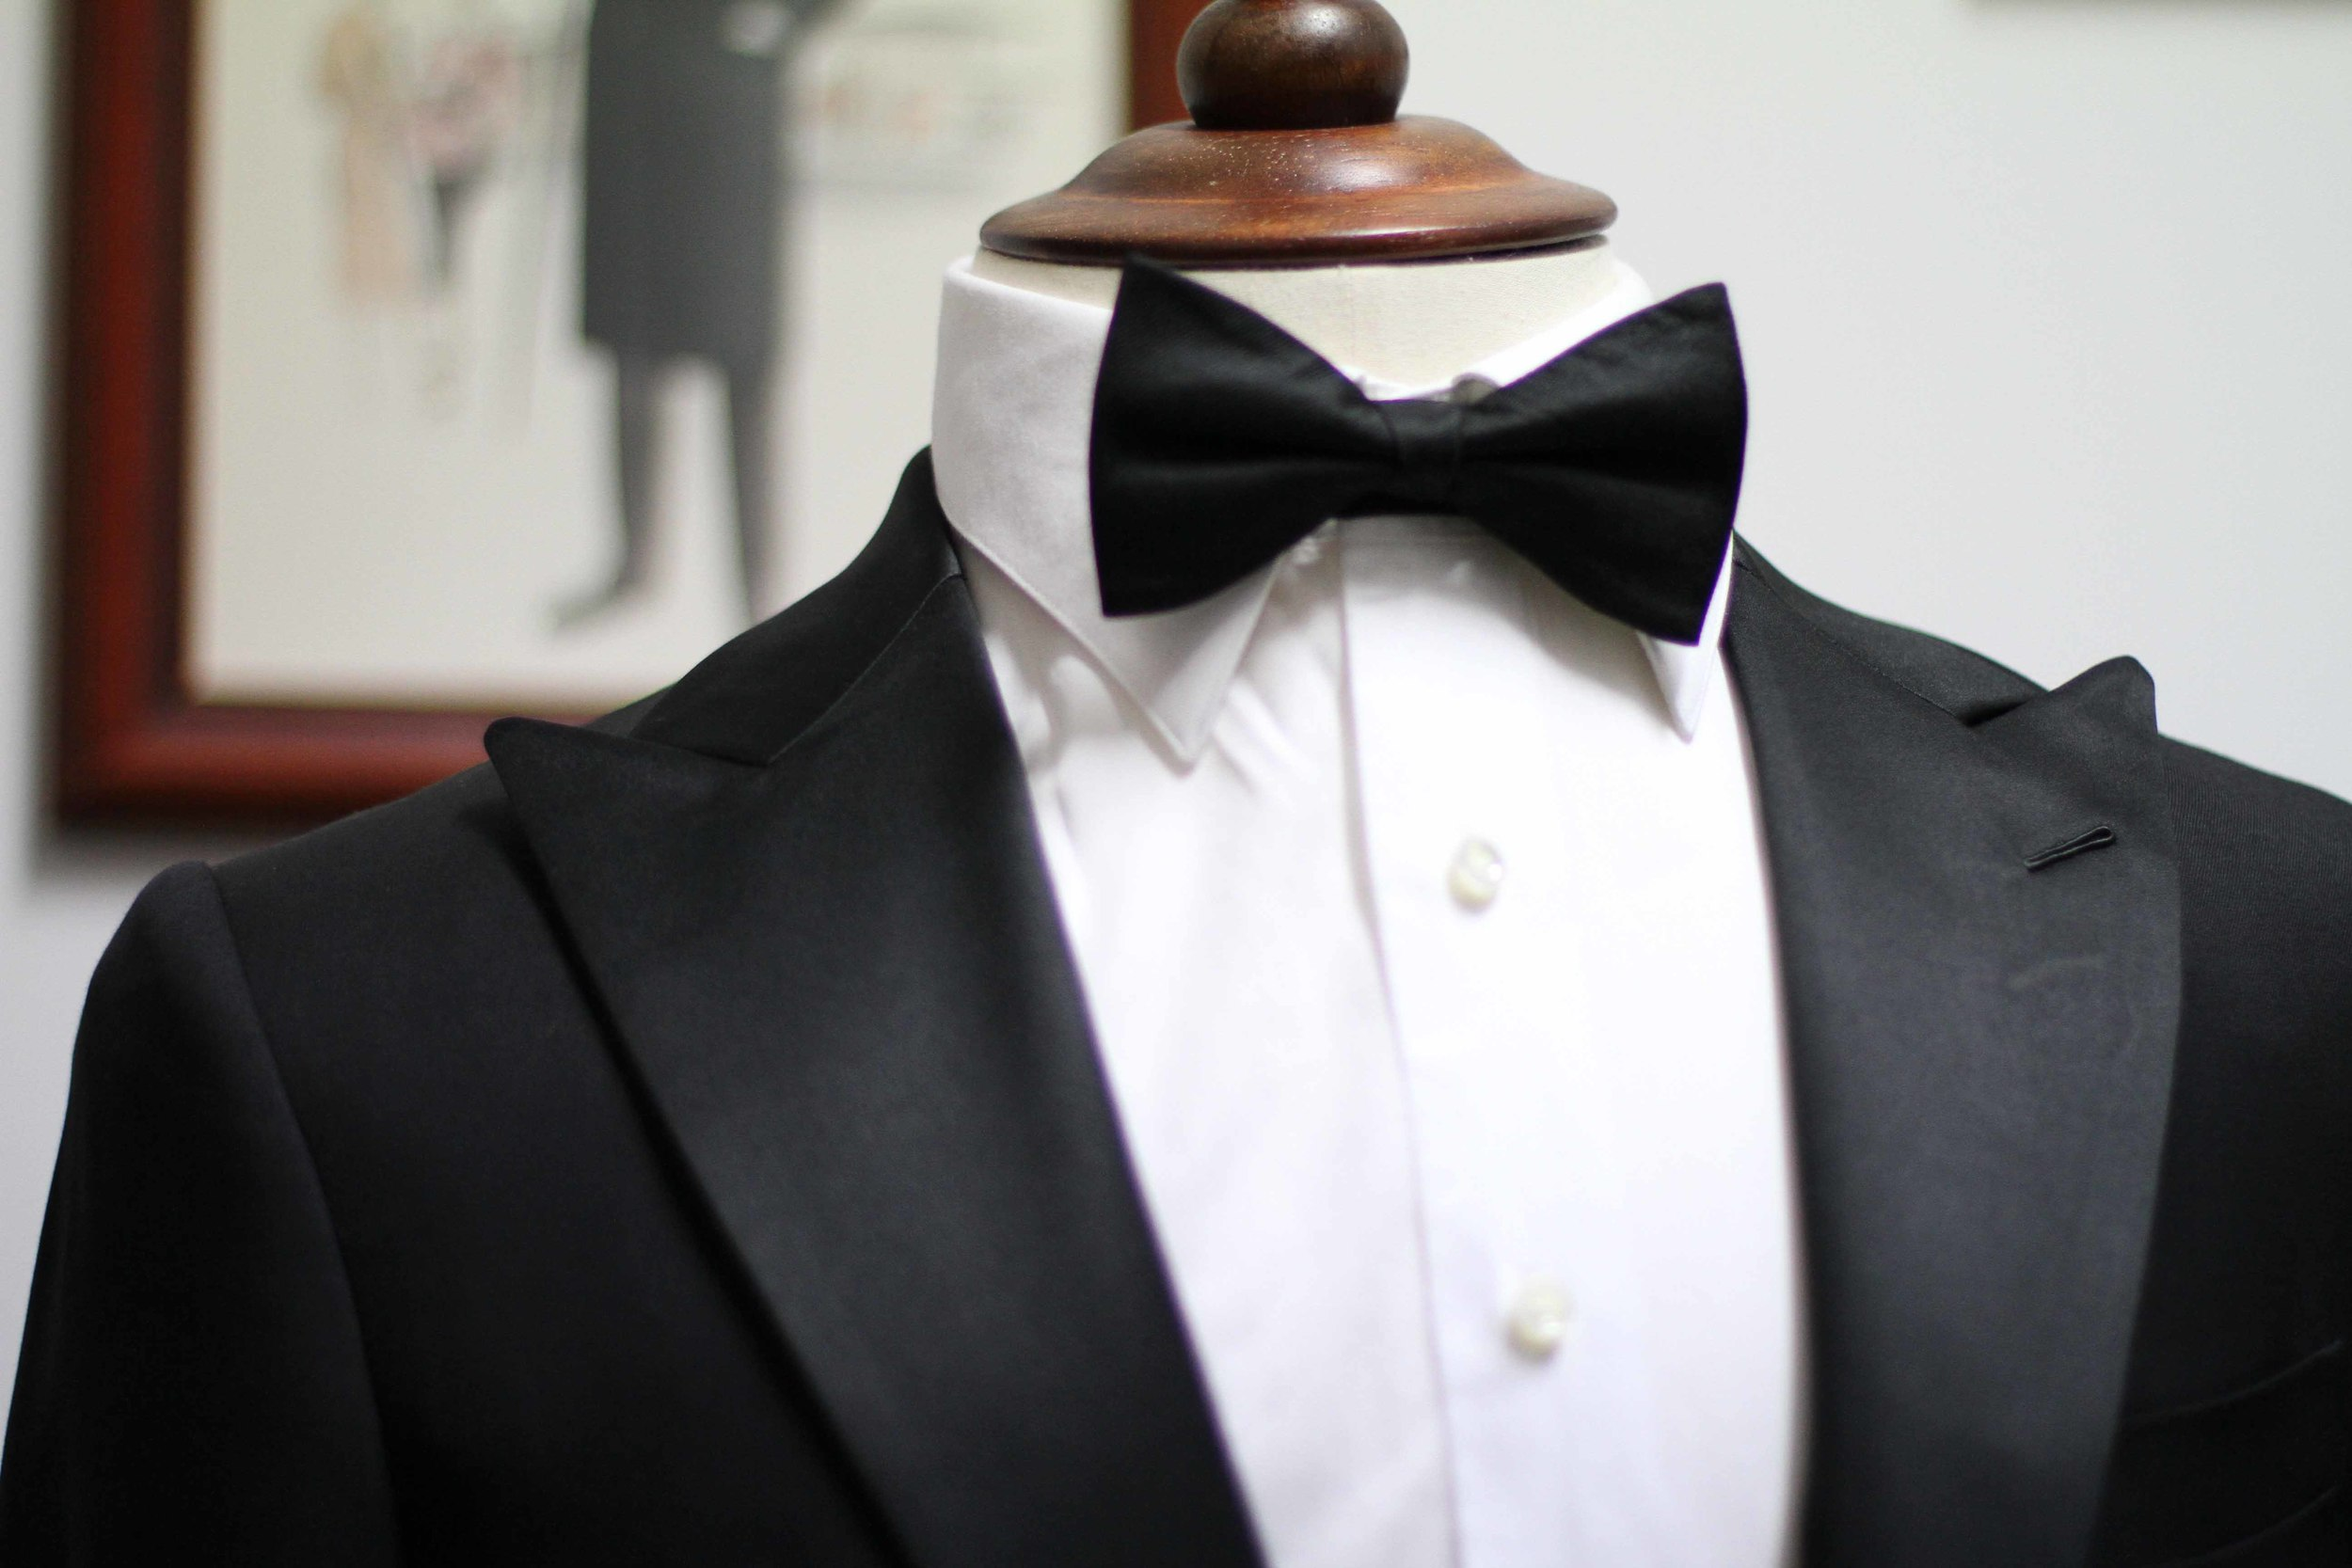 The Satin Lapel in a Peak Style- A Black Tie Classic